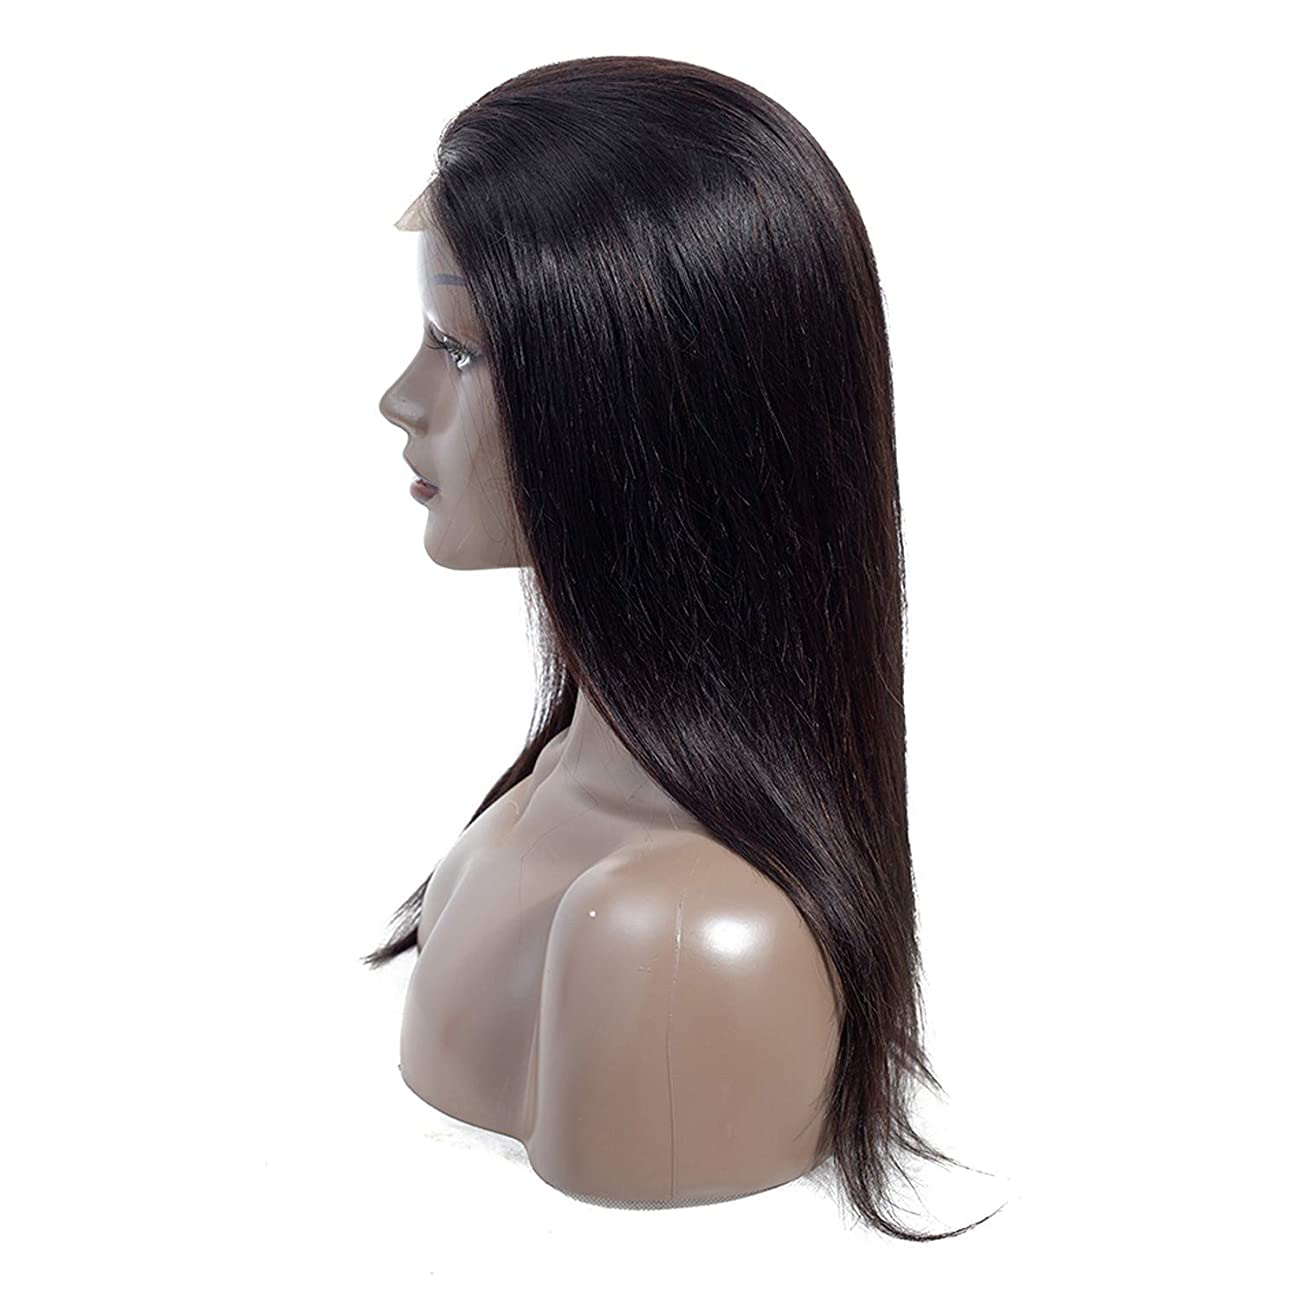 Cherryi Mongolian Straight 100% Human Hair 44 Lace Front Wigs Non Remy Natural Color 10-22 Inch,14inches